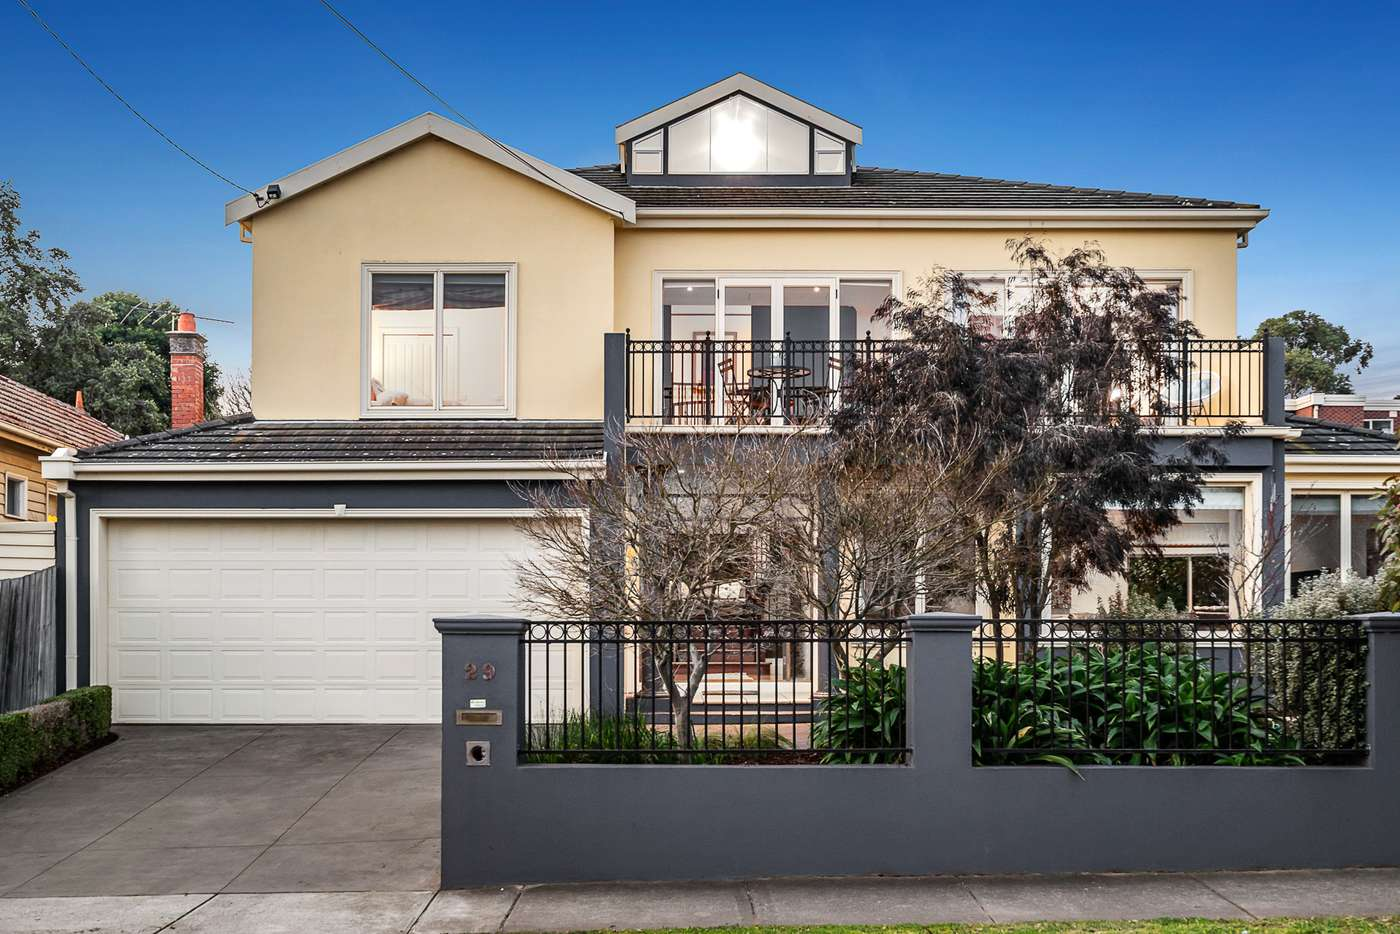 Main view of Homely house listing, 29 Sims St, Sandringham VIC 3191